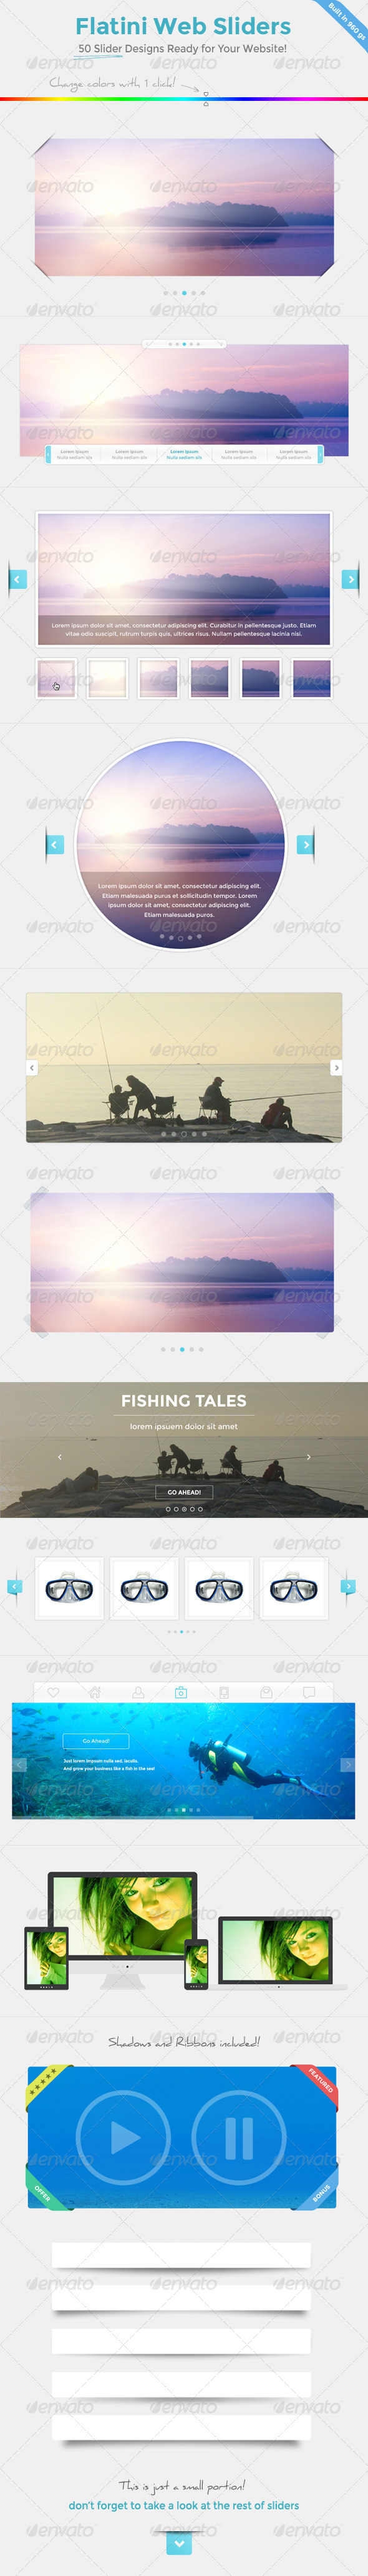 GraphicRiver Flatini Web Sliders 7314264